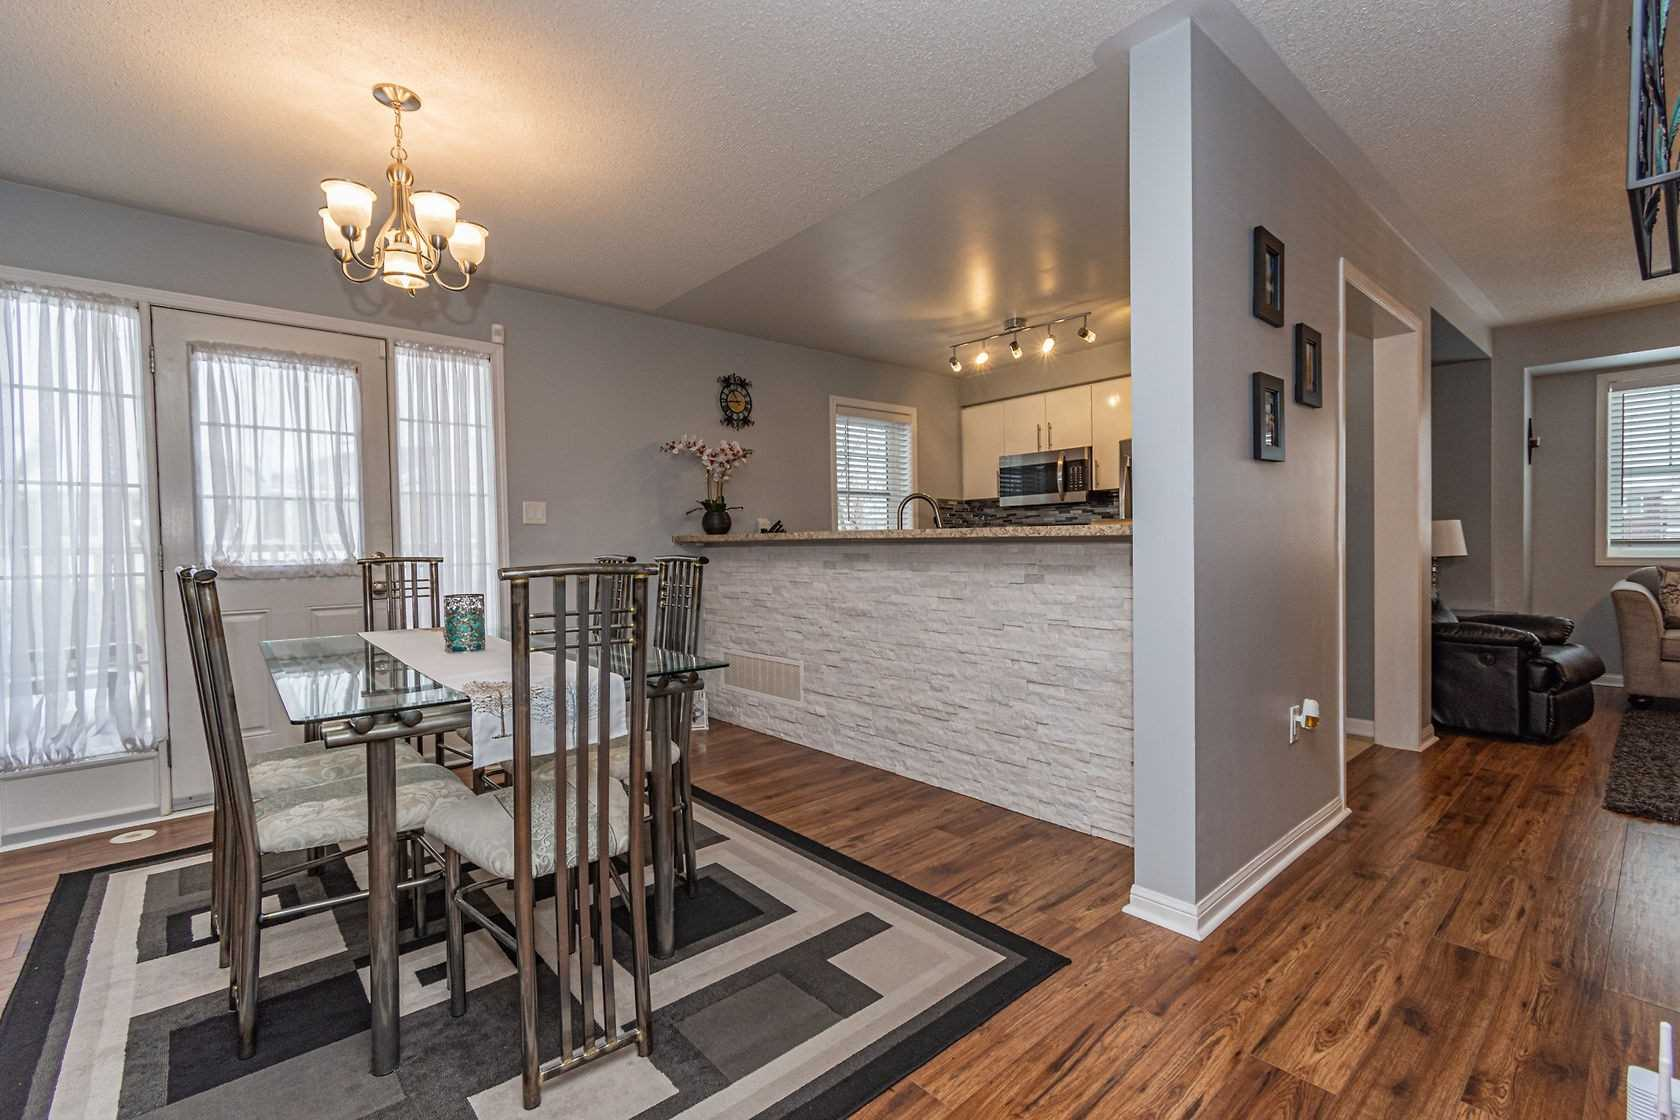 Image 17 of 20 showing inside of 3 Bedroom Att/Row/Twnhouse 3-Storey house for sale at 912 Ambroise Cres, Milton L9T0M2